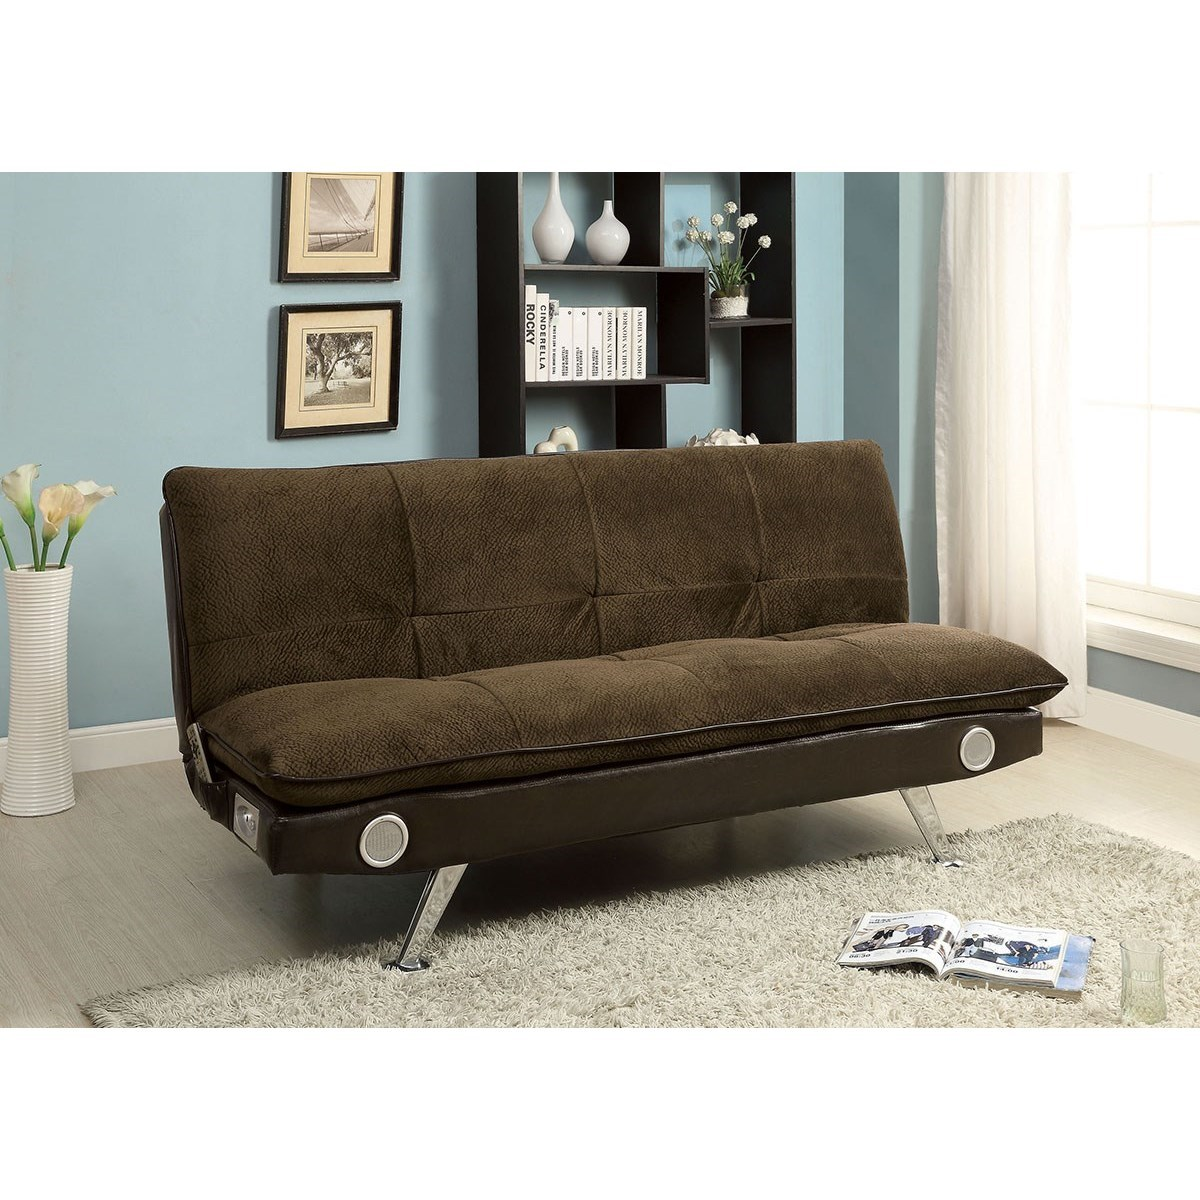 Gallagher Futon Sofa with Bluetooth Speaker by Furniture of America at  Rooms for Less